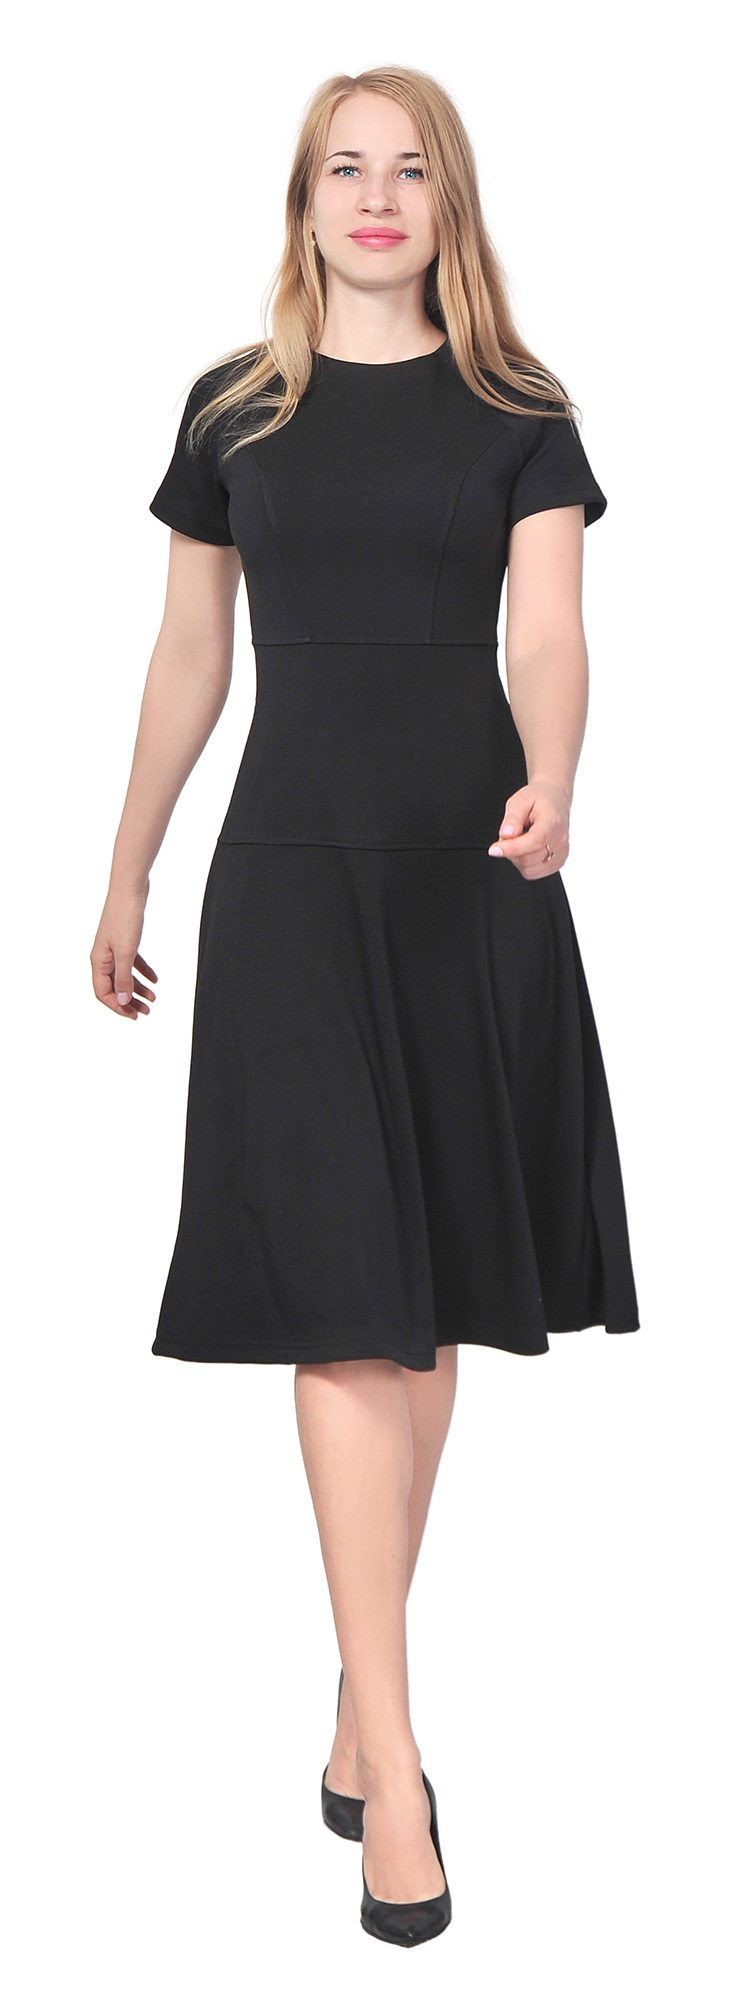 Womens Elegant Casual Work Office Knee Length Dress Short